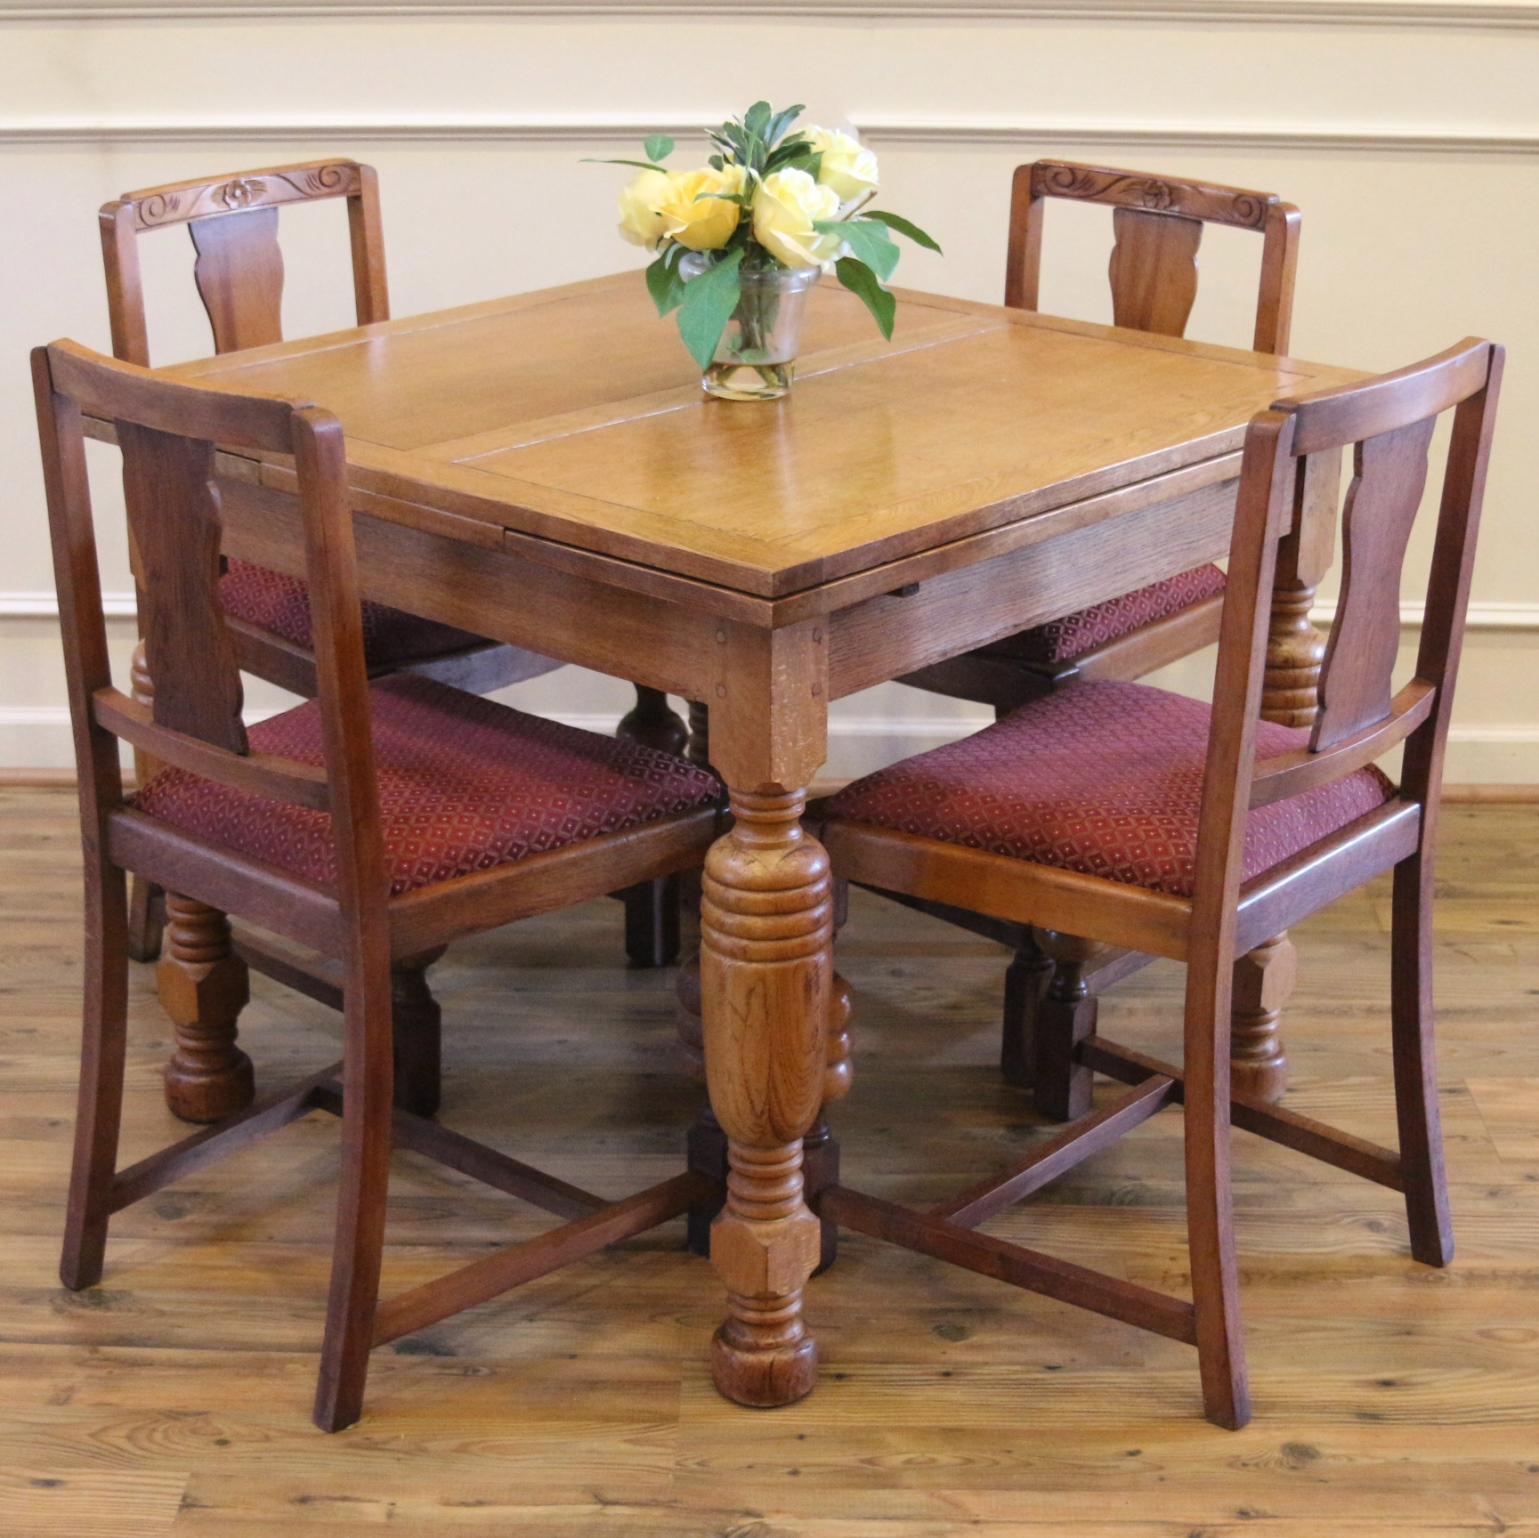 Bench Tables For Sale: Antique English Oak Pub Table And 4 Chairs Dining Set. For